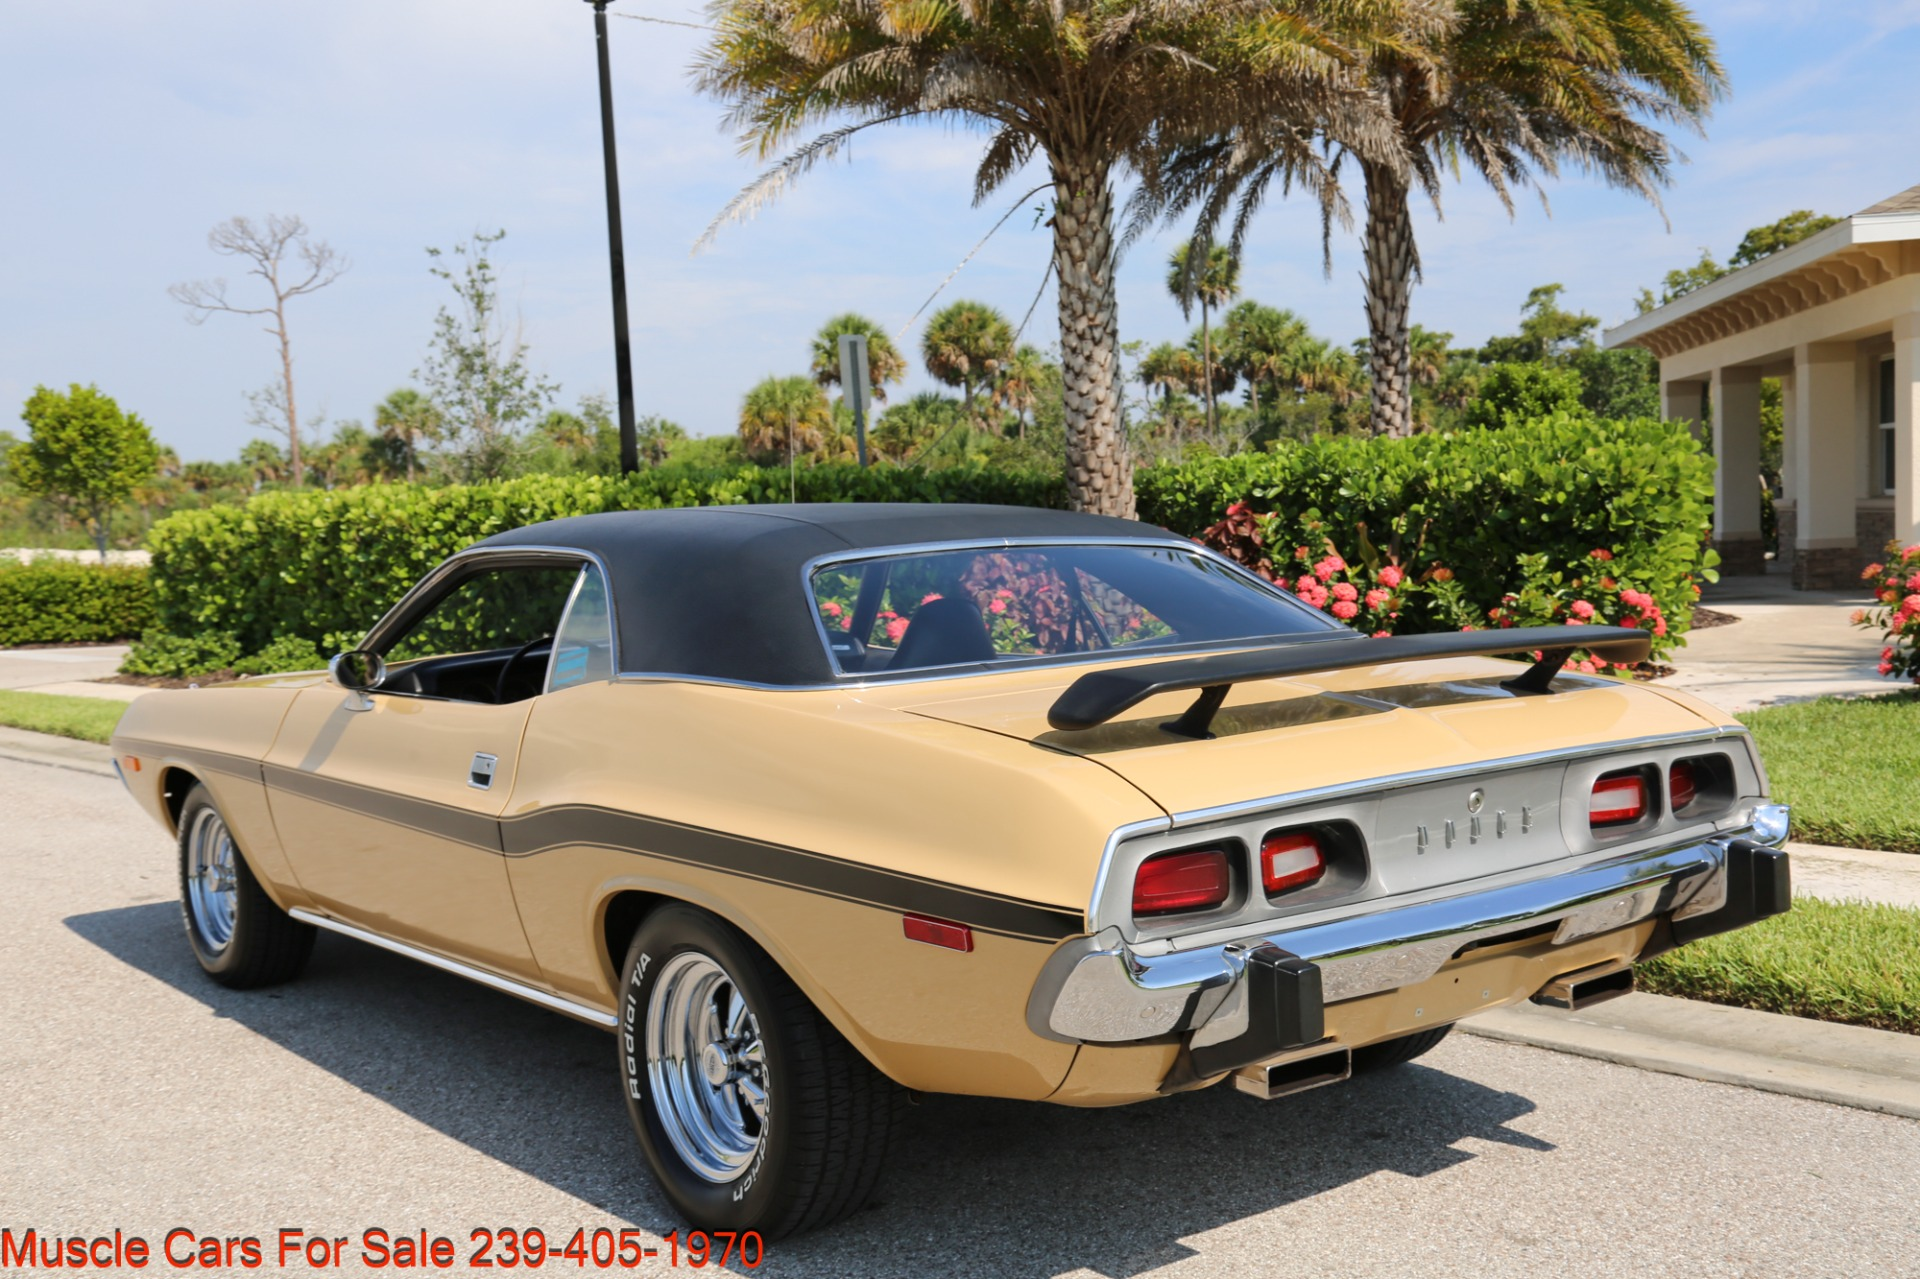 Used 1974 Dodge Challenger V8  Auto for sale $34,000 at Muscle Cars for Sale Inc. in Fort Myers FL 33912 4